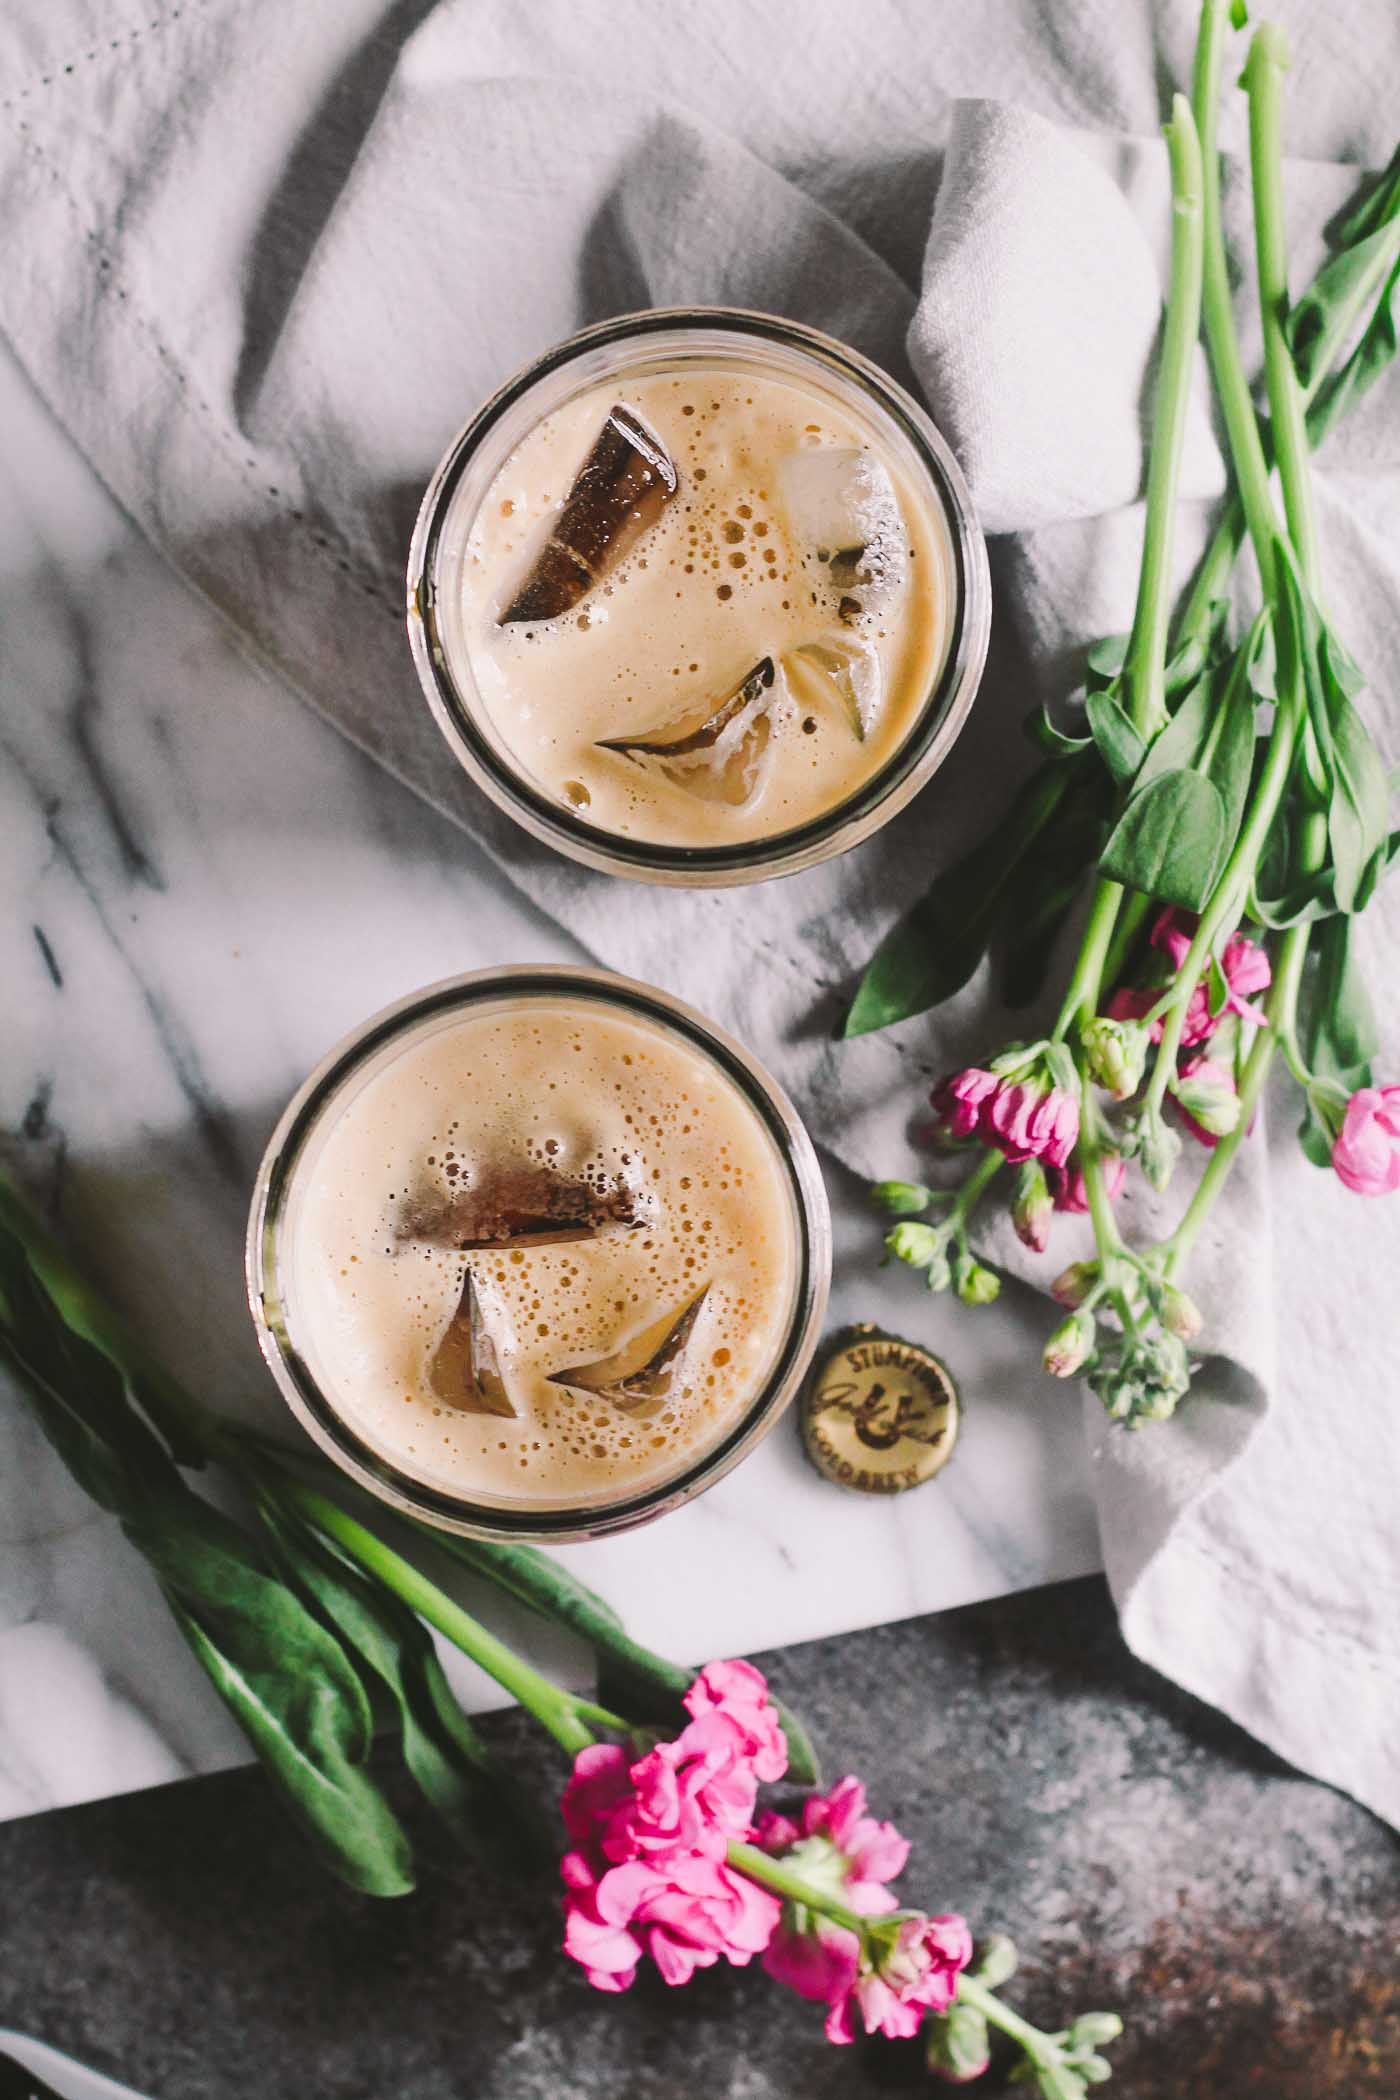 porter cold brew iced coffee is a rich & creamy iced coffee cocktail perfect for springtime & summer weekend brunch vibes! the intense coffee flavor of cold brew coffee meets its perfect match in the slightly sweet & roasty flavors of dark porter beer. porter cold brew iced coffee will be your go-to coffee treat this summer!   cold brew coffee, brunch cocktail recipe, coffee cocktail recipe, spiked coffee, iced coffee  